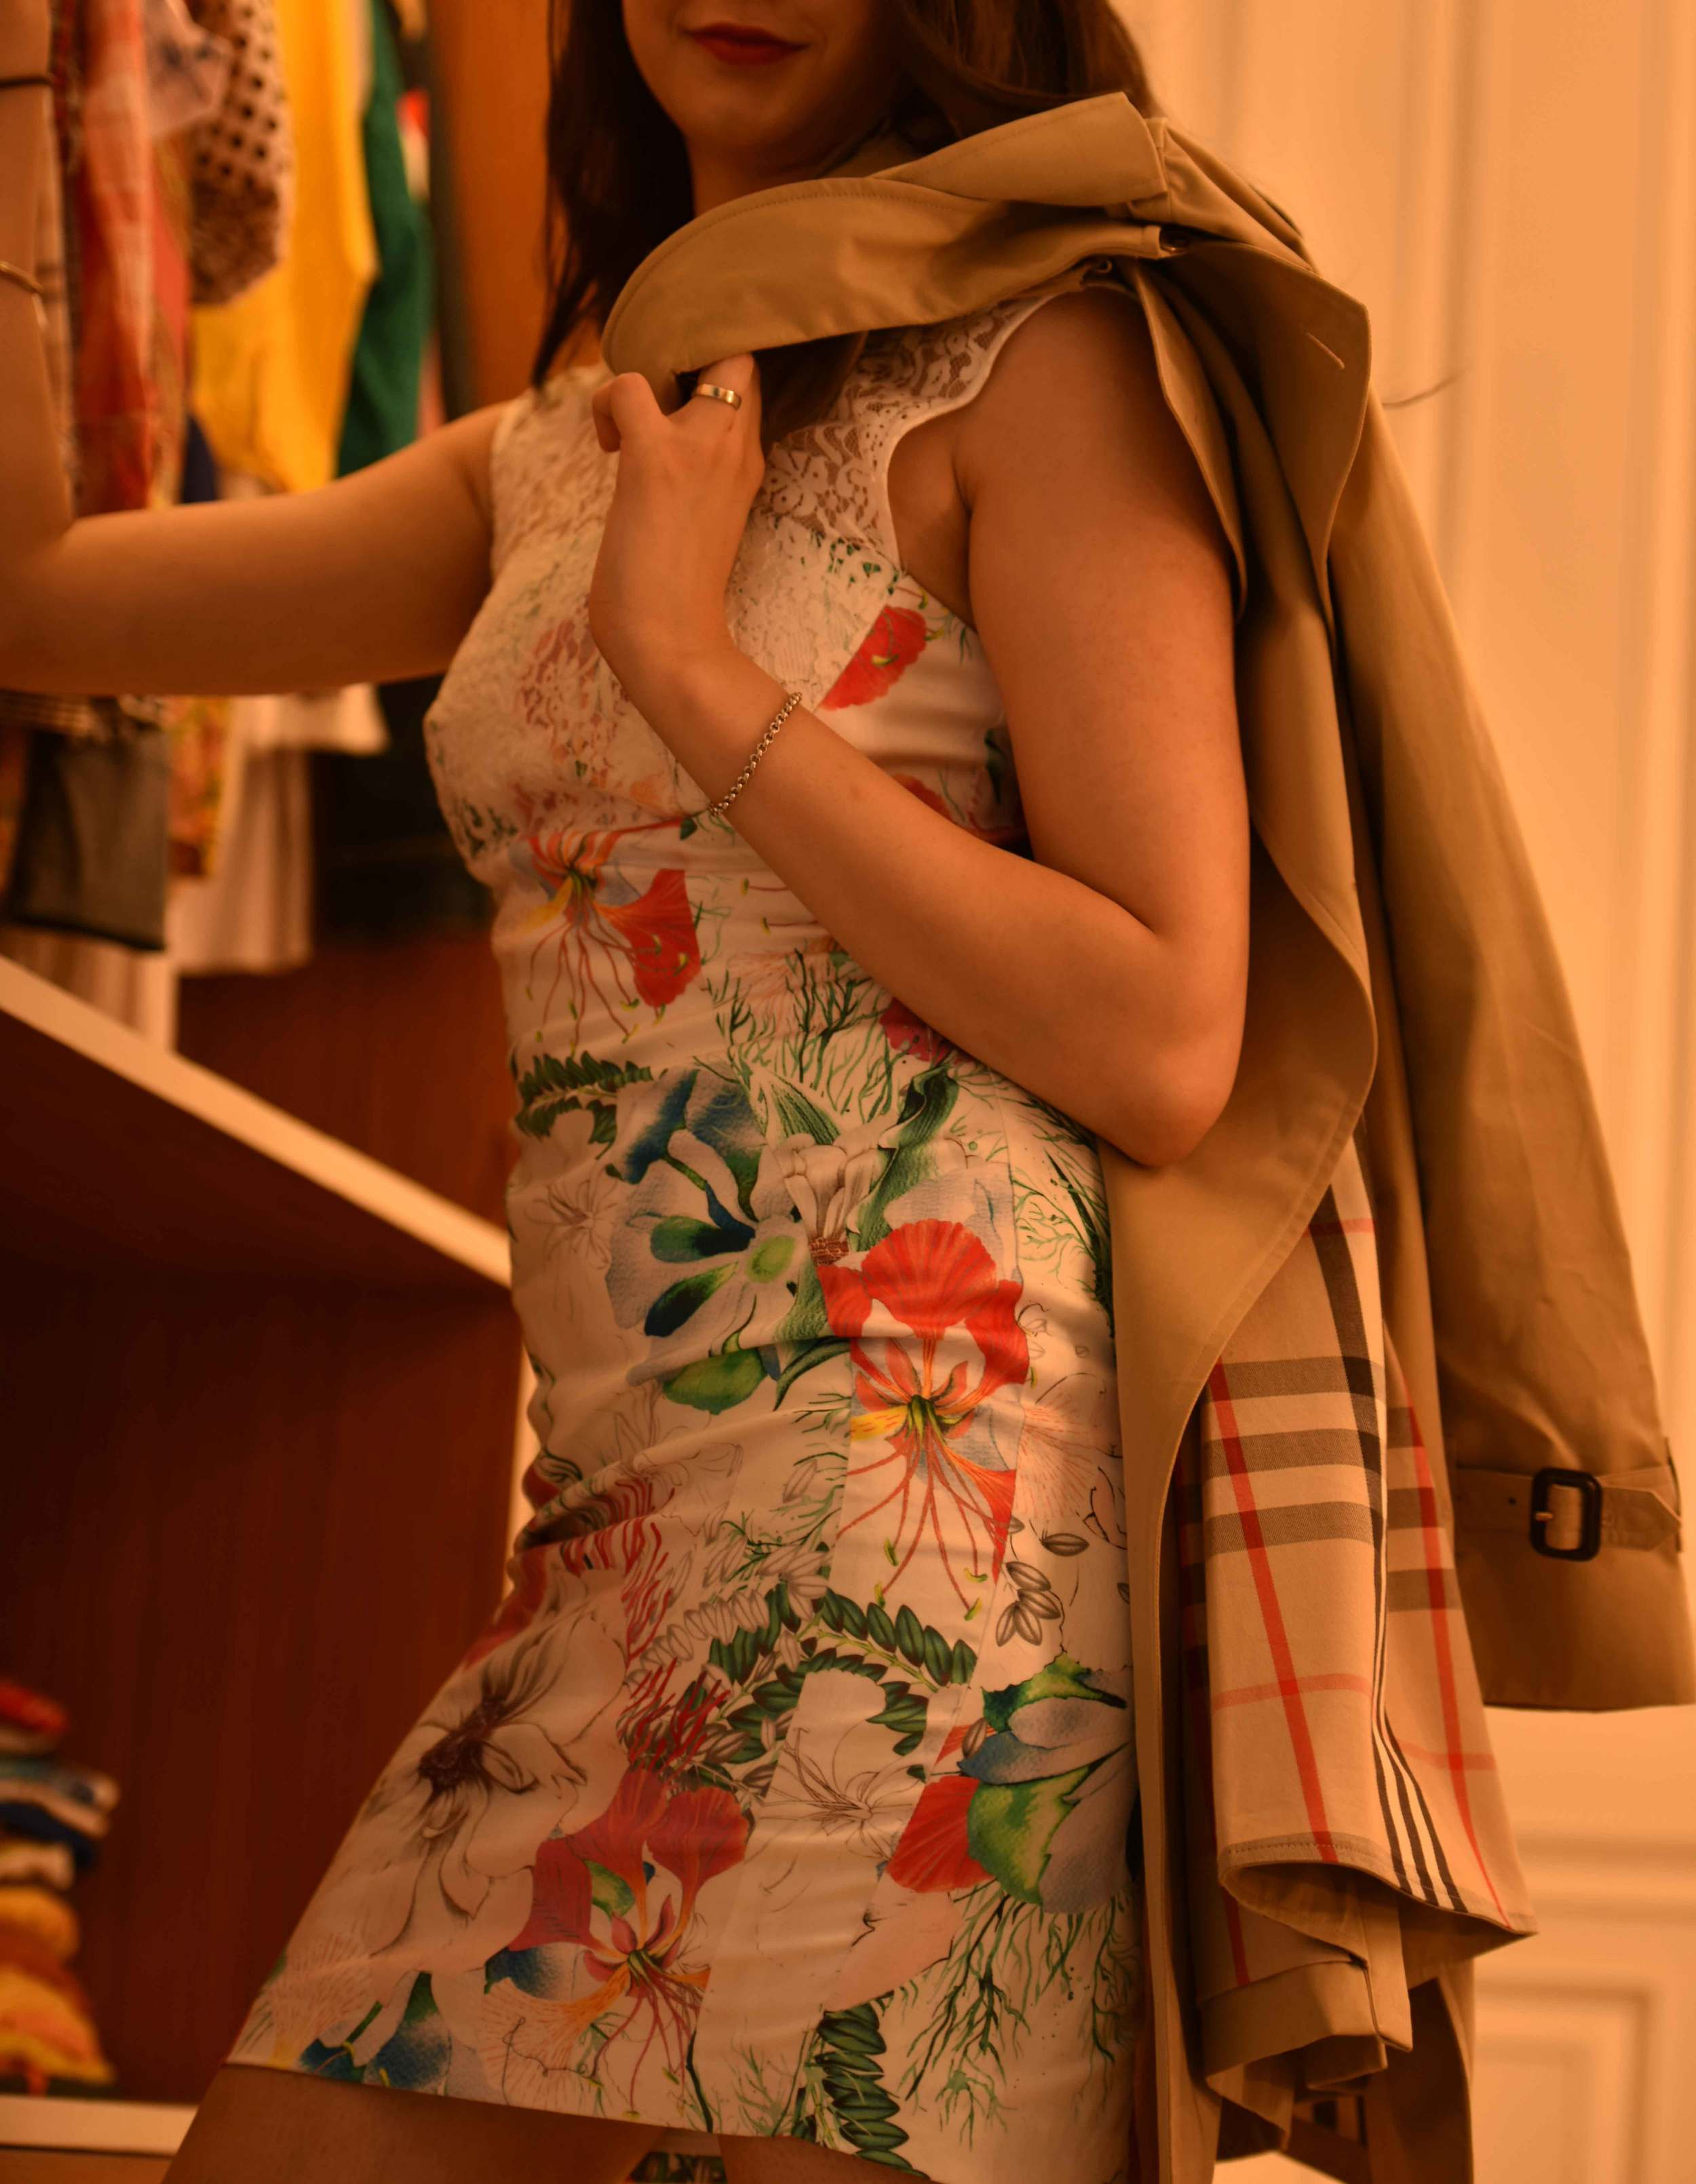 A floral printed sheath dress, a classic Burberry trench coat. Image©sourcingstyle.com